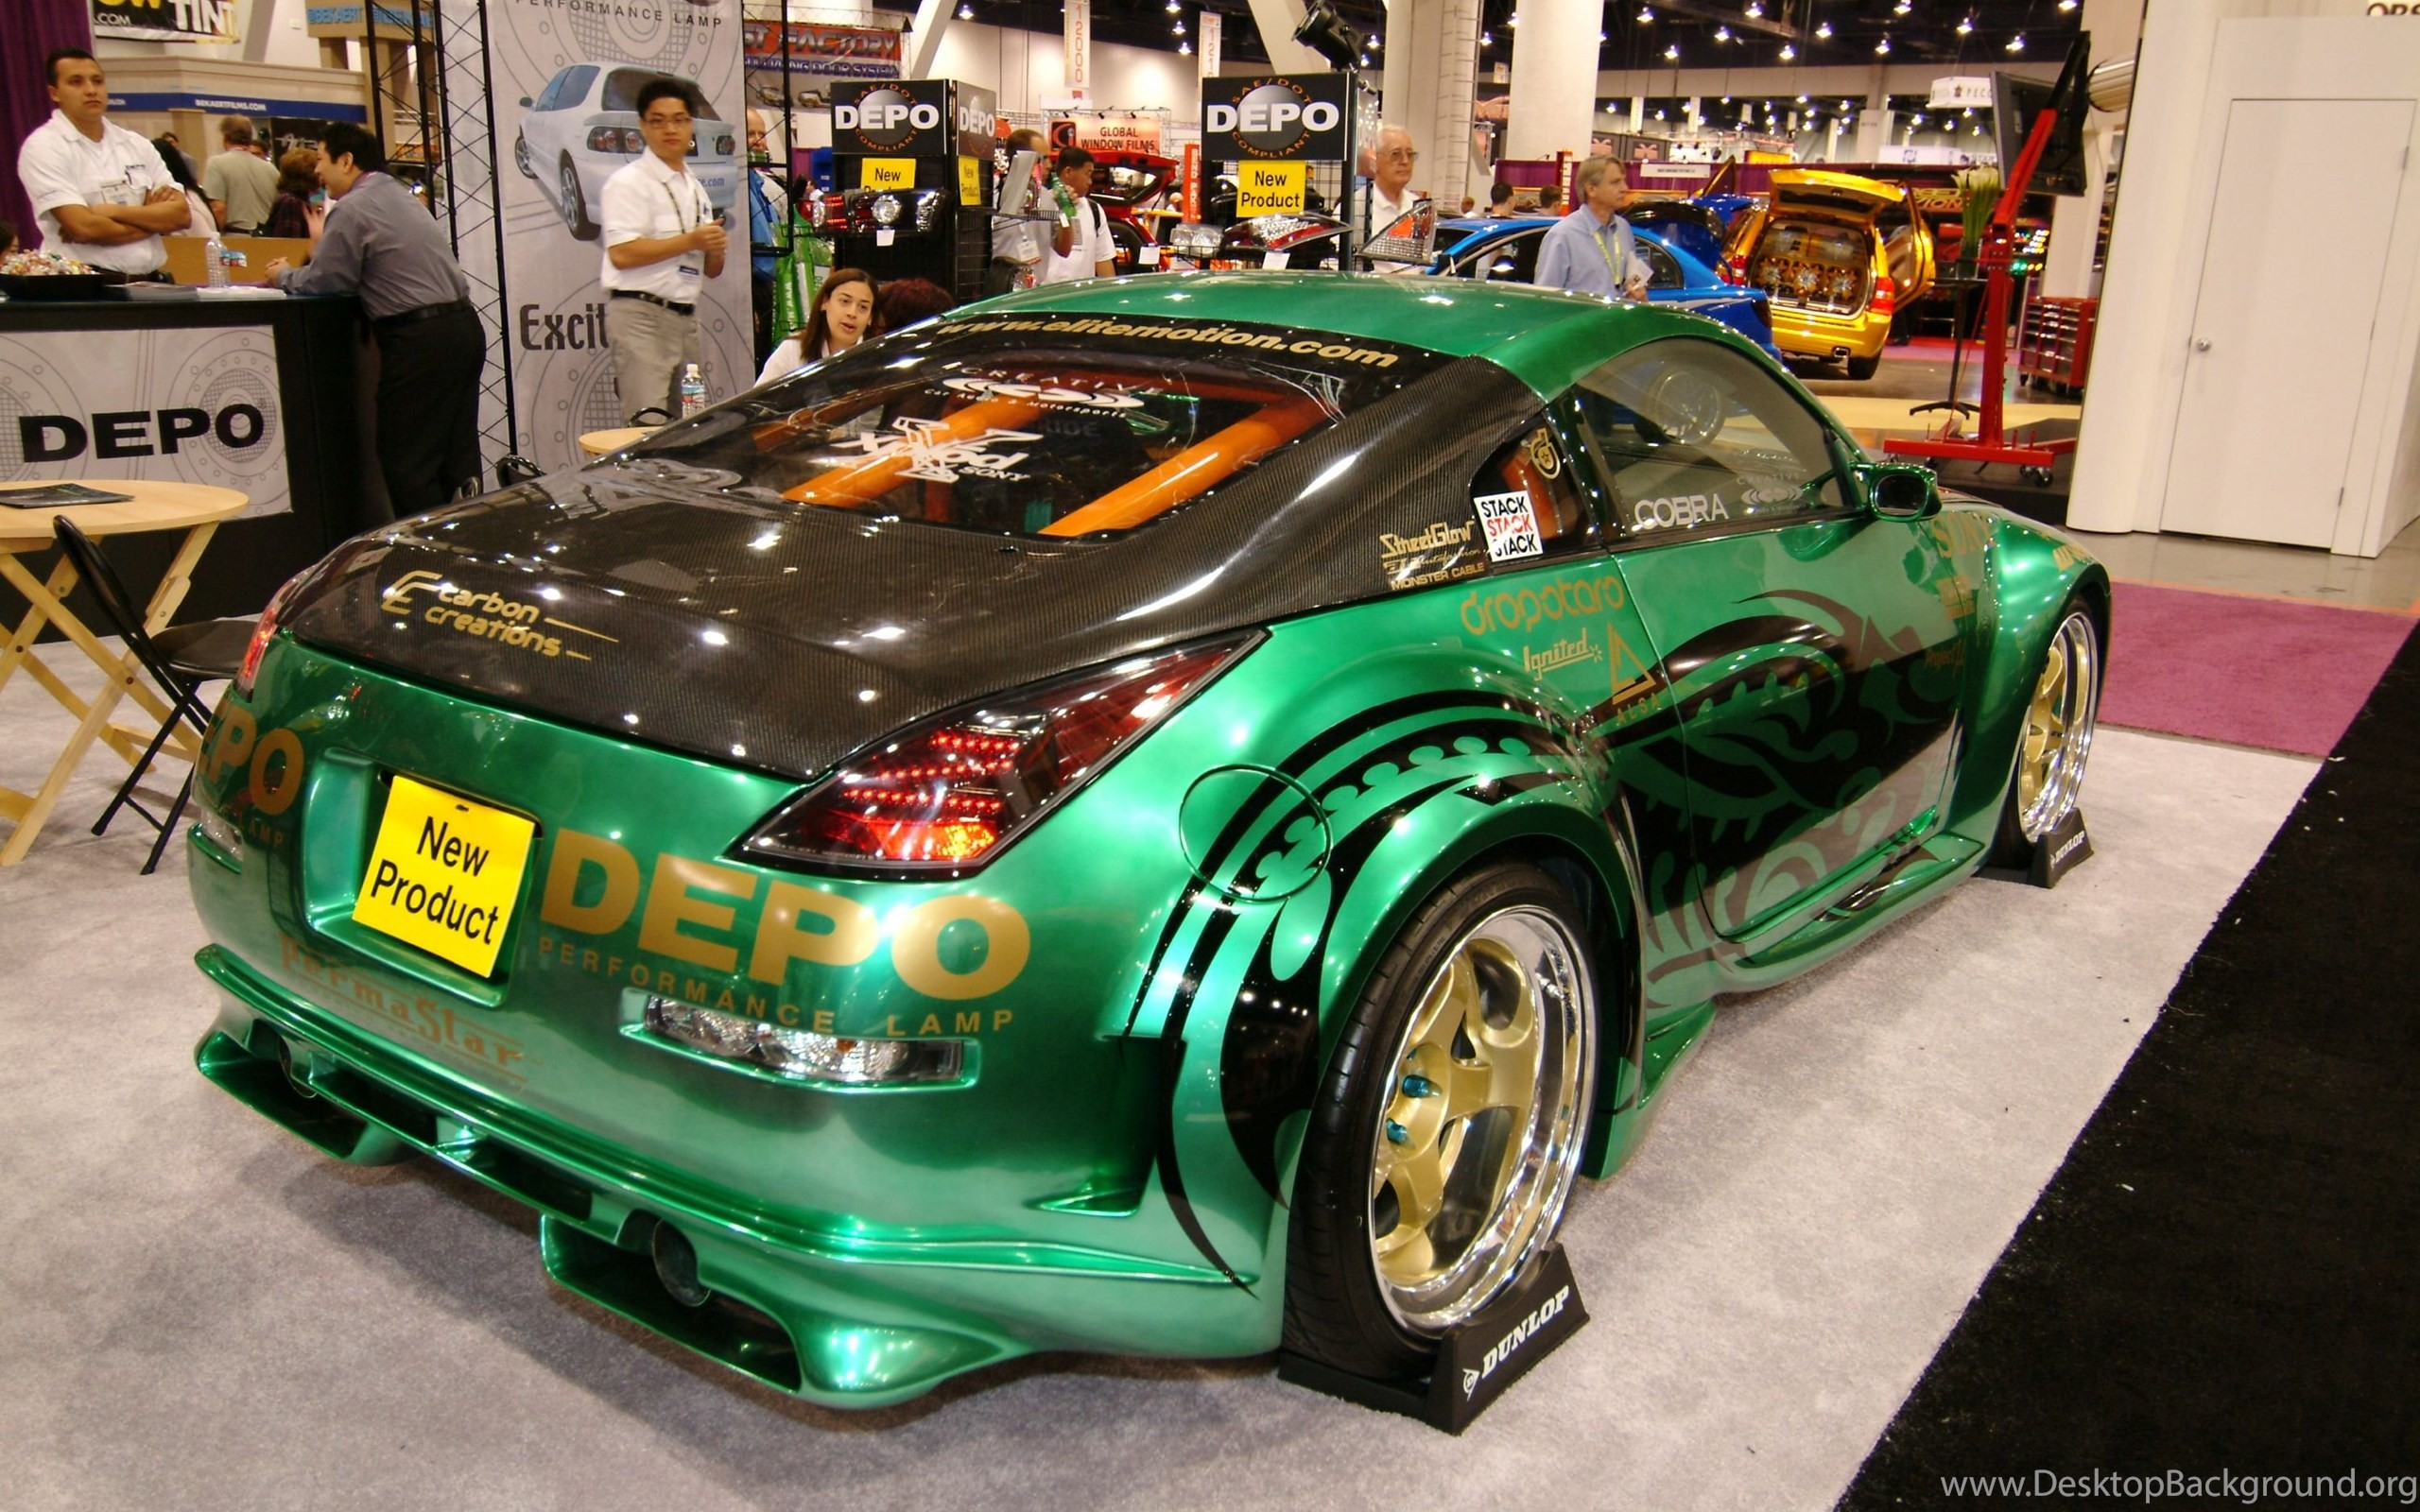 Fast And Furious 8 Cars Wallpaper Hd Tokyo Drift Cars Wallpapers 183 ①